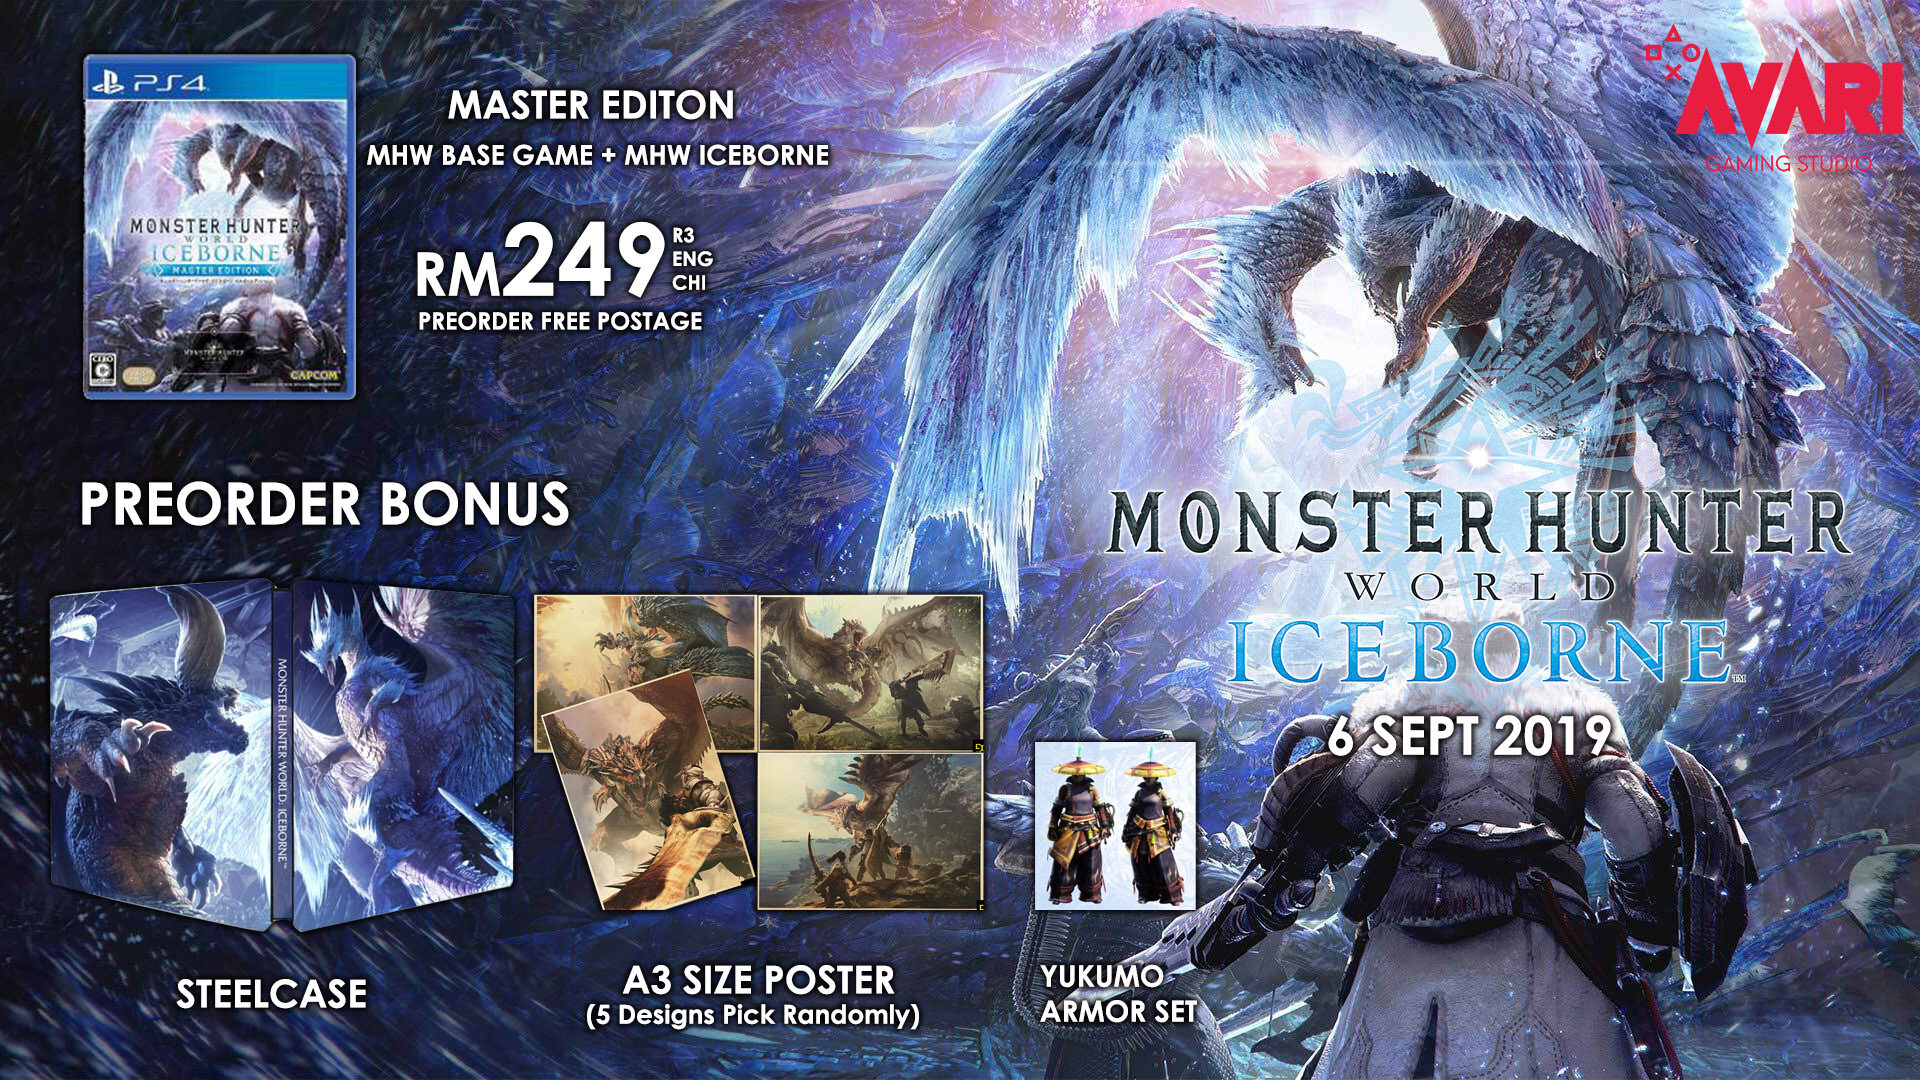 [PREORDER] [FREE A3 SIZE POSTER] [FREE STEELCASE] PS4 MONSTER HUNTER WORLD  ICEBORNE MASTER EDITION + CONTROLLER HOLDER R3 ENG CHI ETA 6 9 19